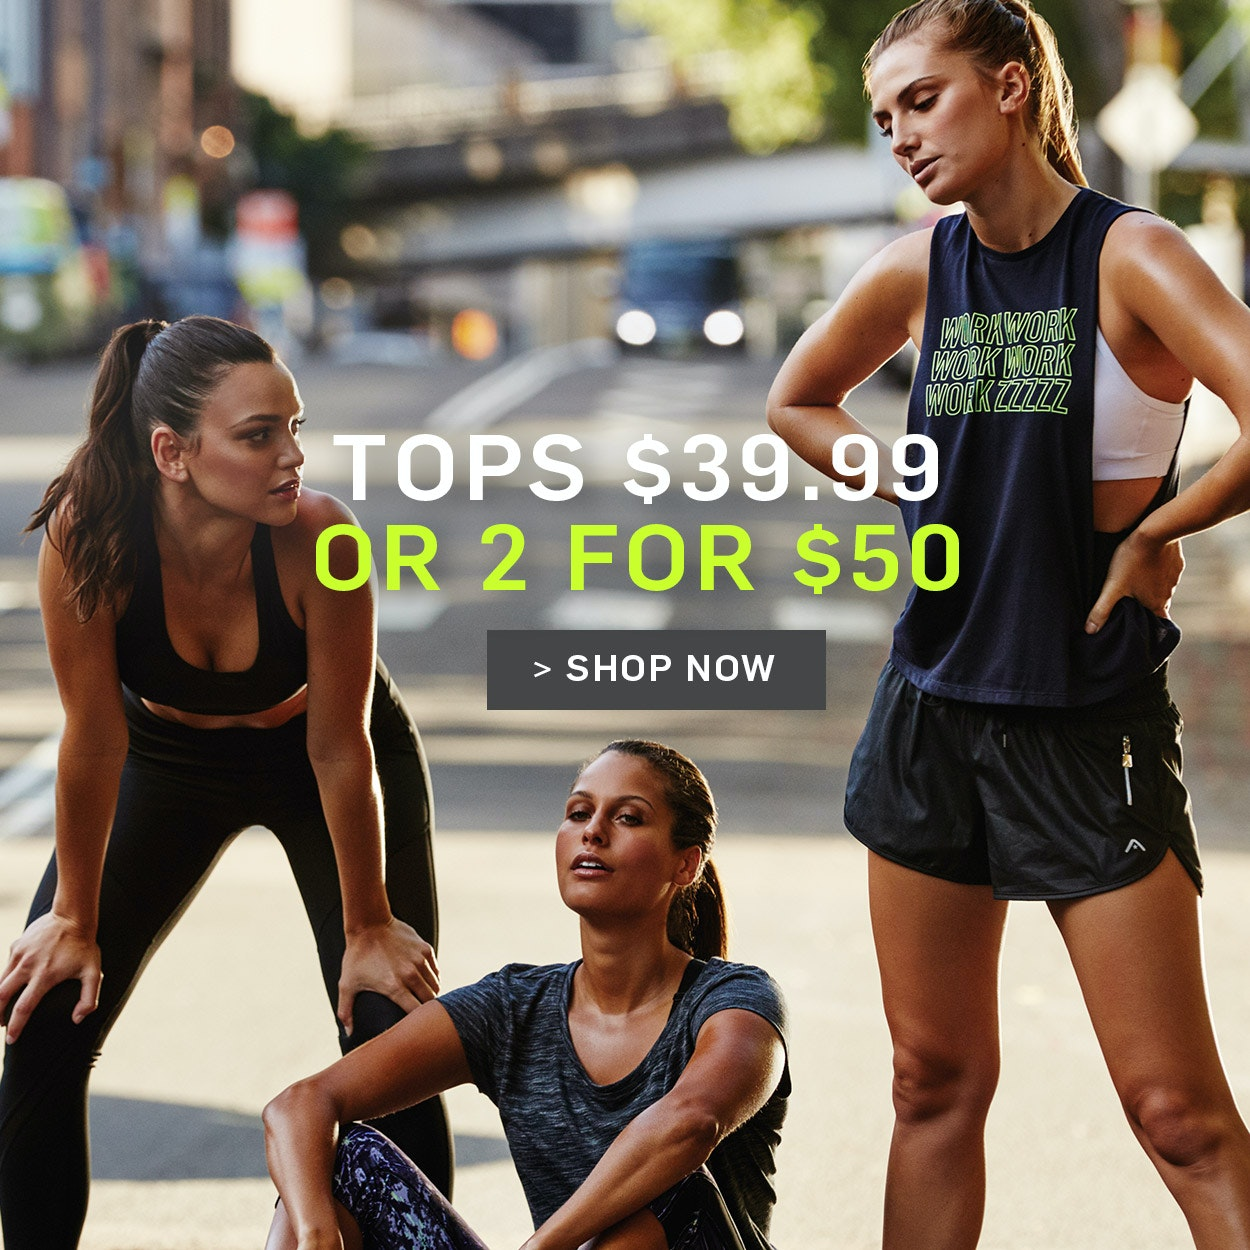 2 for $50 Tops